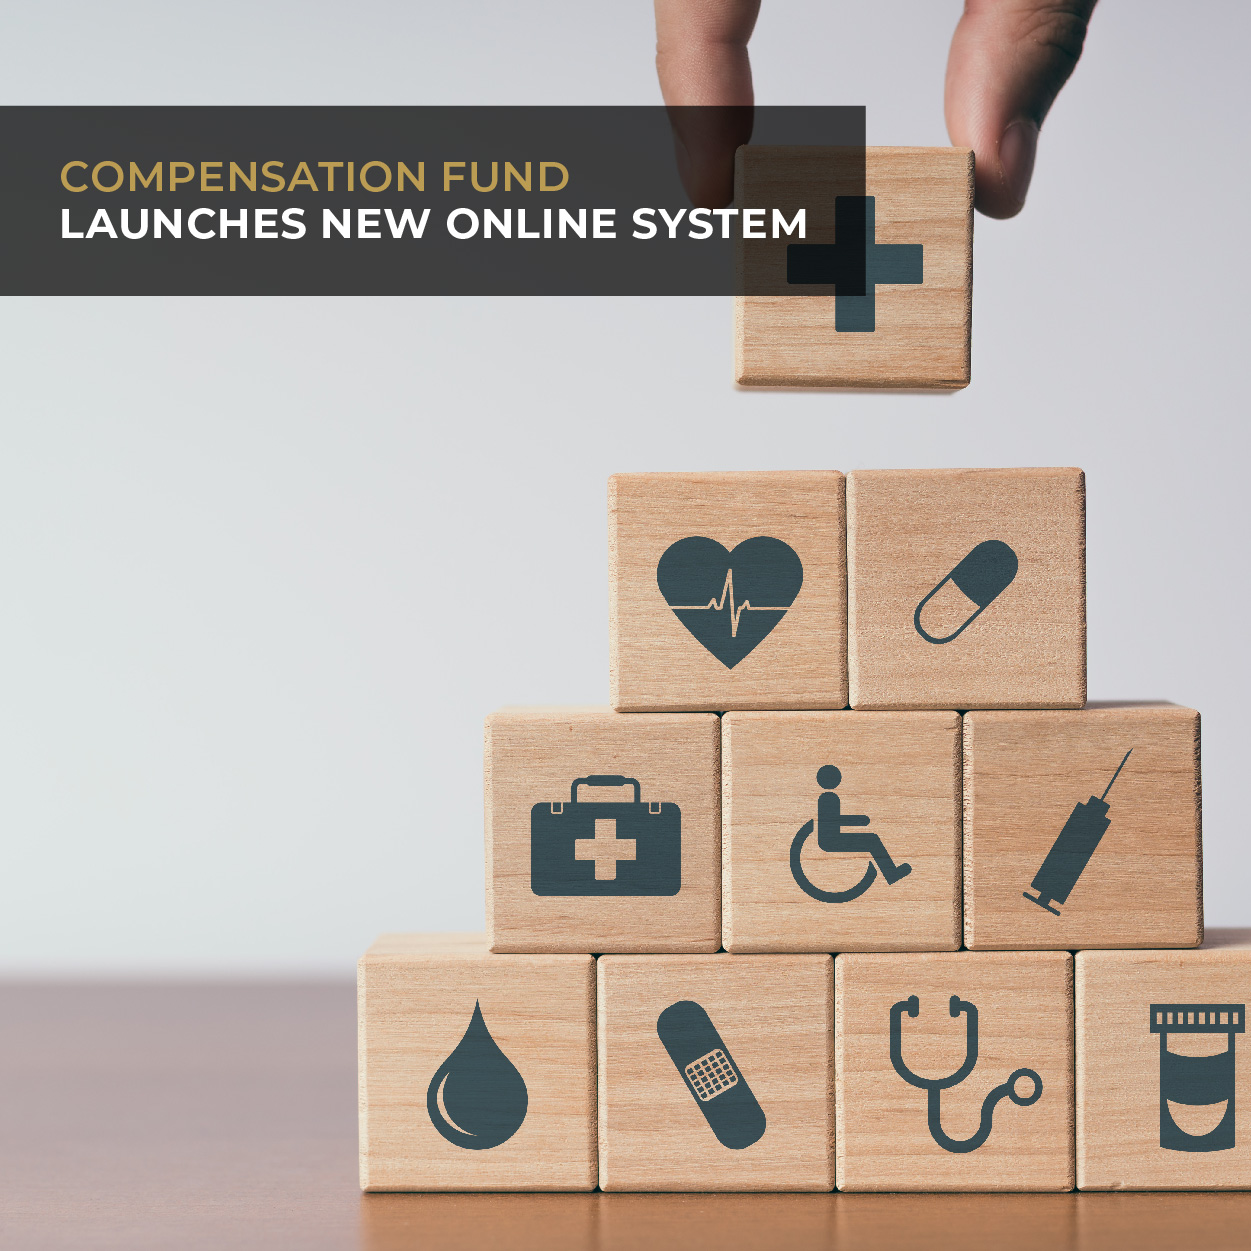 Compensation fund launches new online system